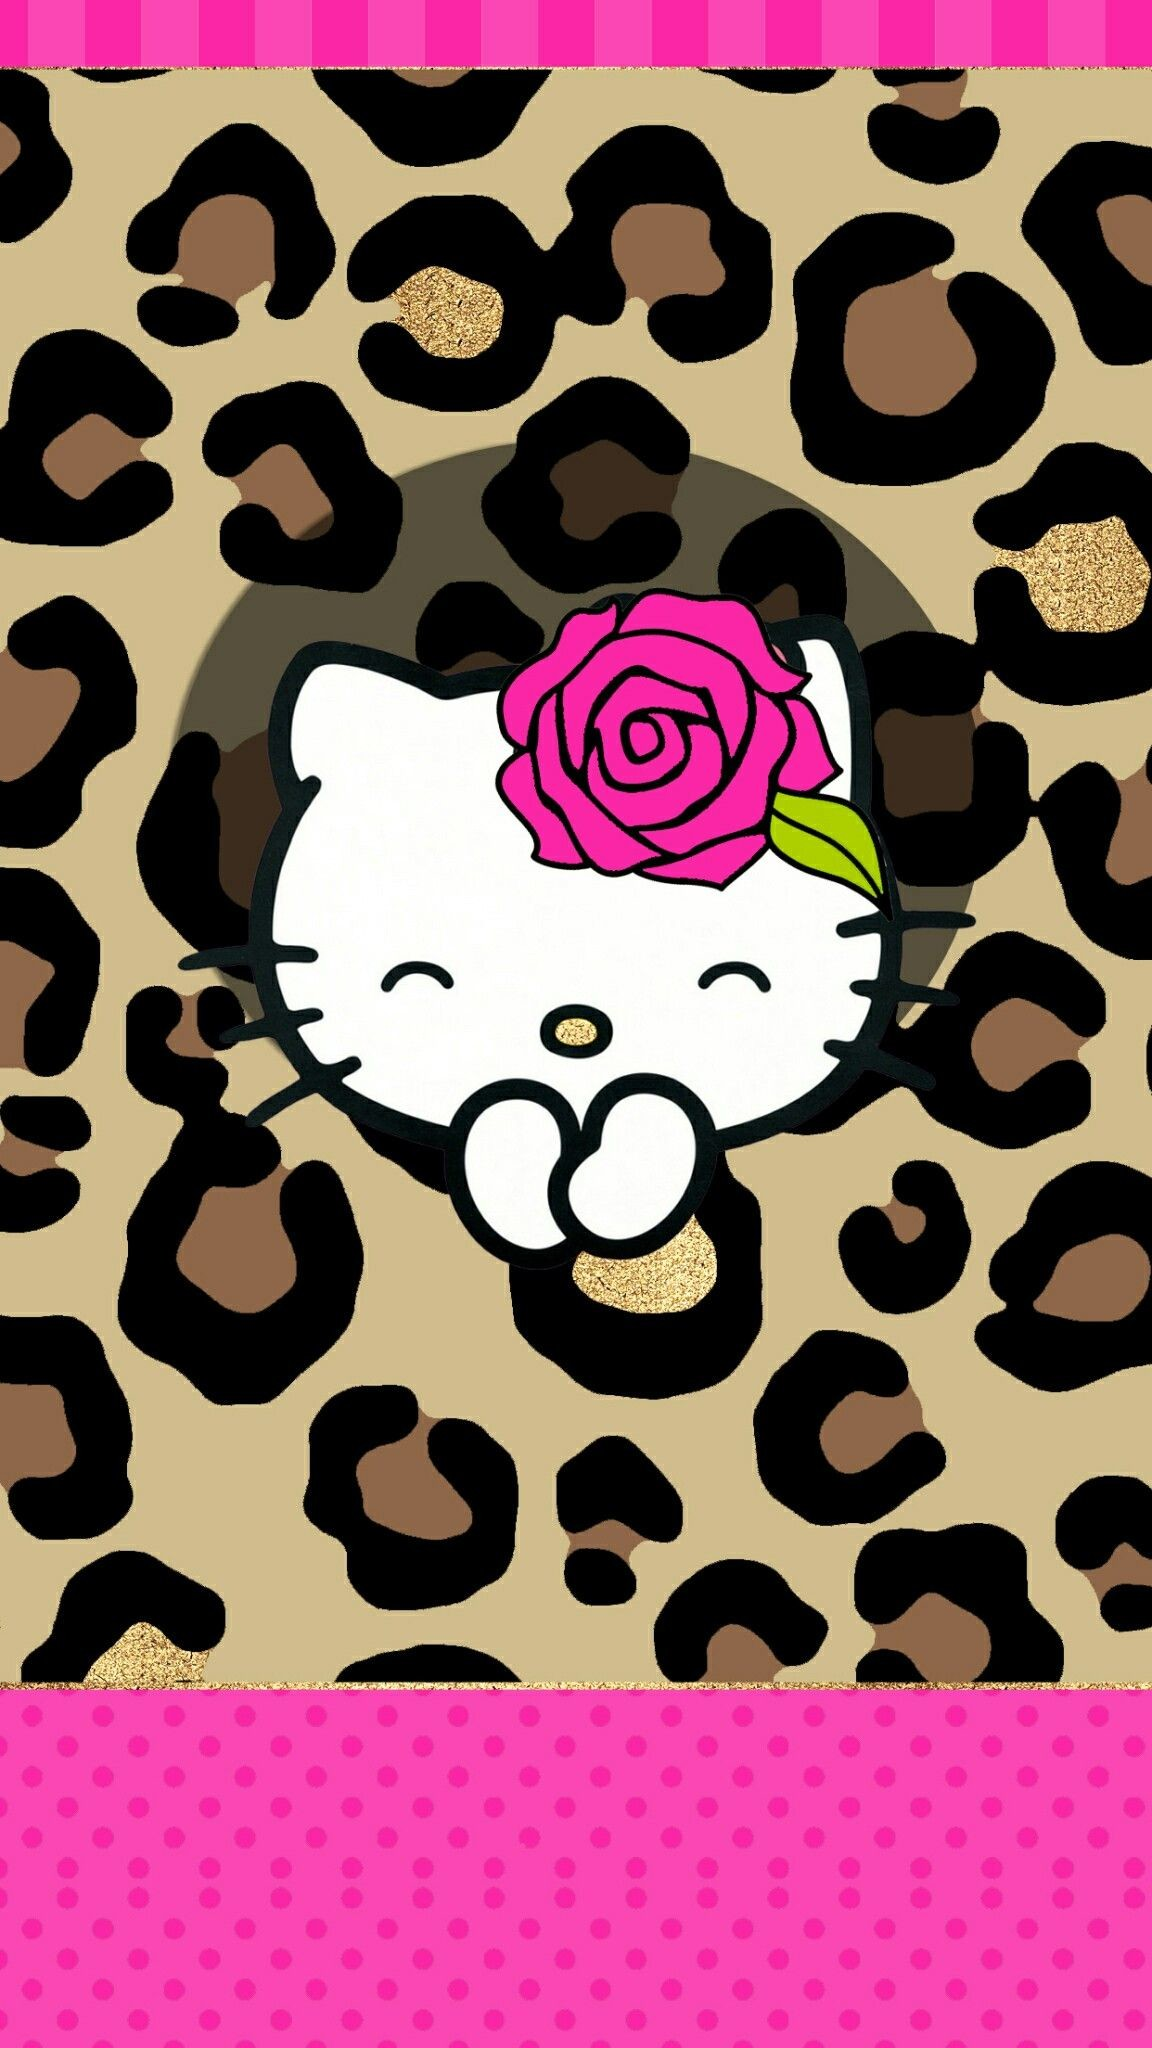 1152x2048 Hello Kitty Pictures Girly Pictures Wallpaper Home Screen Hello Kitty 1152x2048 Wallpaper Teahub Io